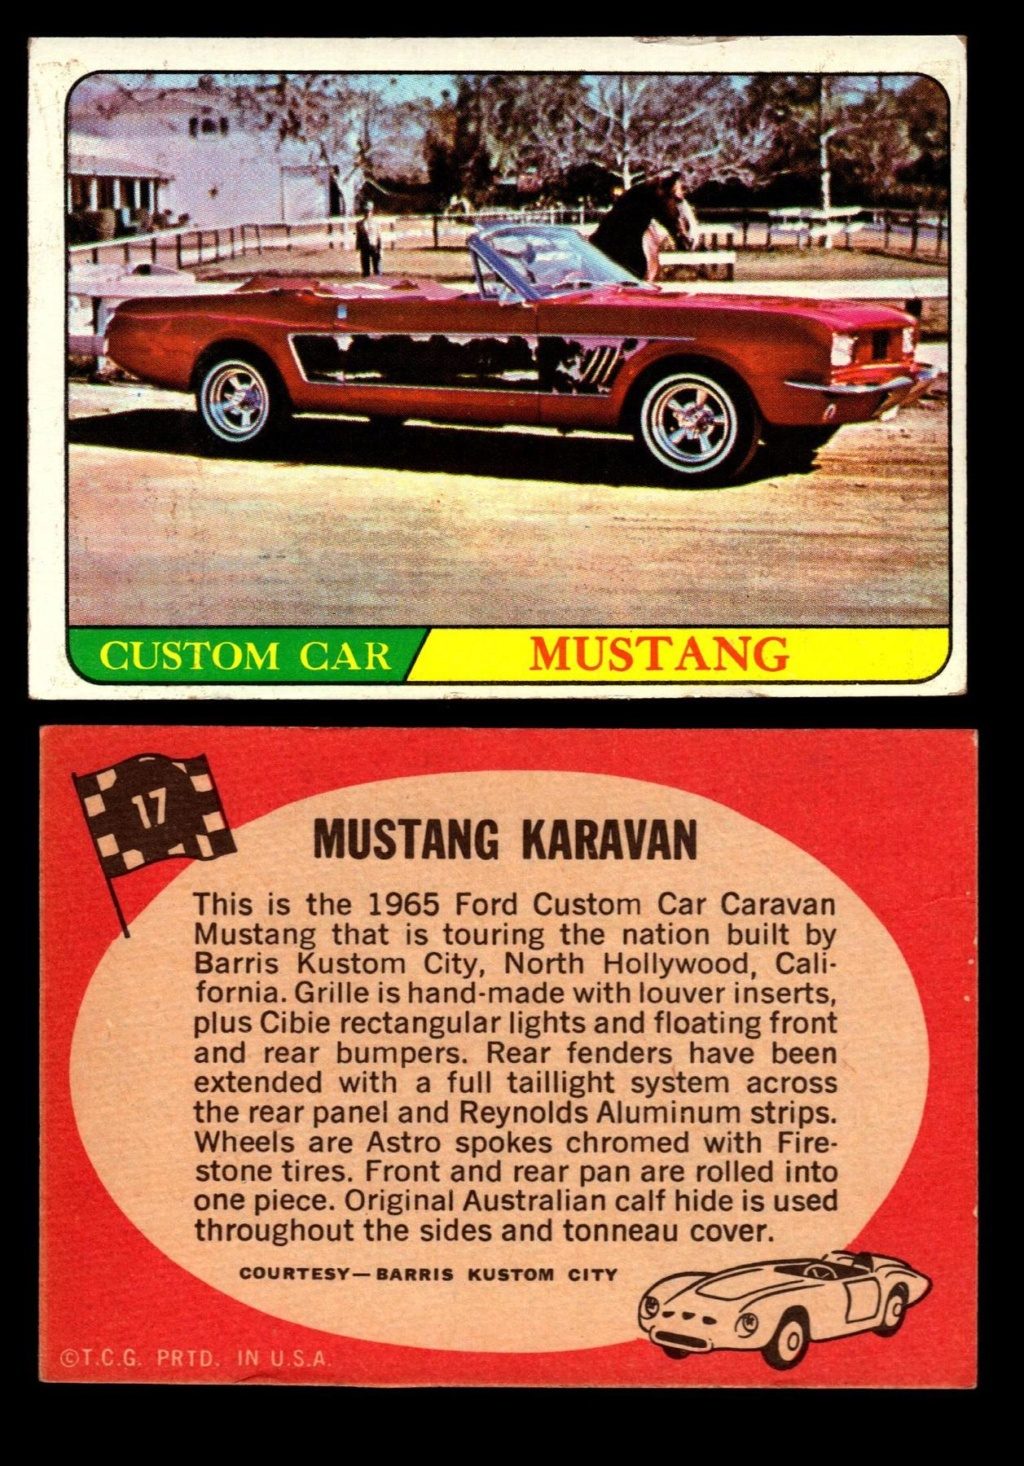 Hot Rods Topps - Vintage Trading Cards 1968 - Custom car - Dragster - Racer - Dream car - Barris Kustom City - Ed Roth Darrill Starbird, Gene Winfield, Bill Cuchenberry 17_eb810